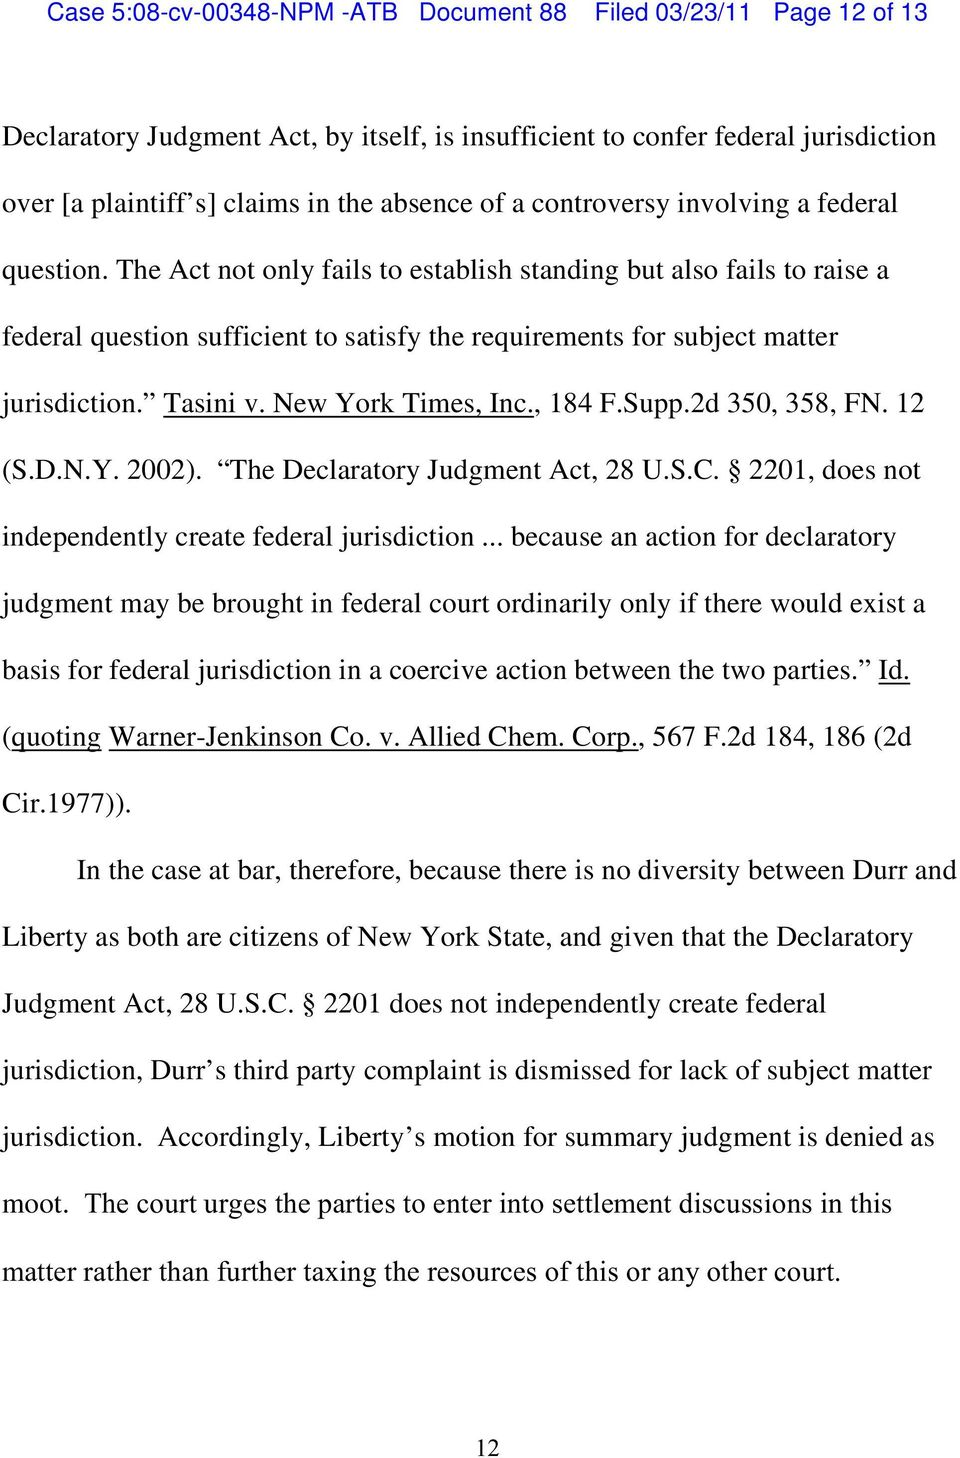 The Act not only fails to establish standing but also fails to raise a federal question sufficient to satisfy the requirements for subject matter jurisdiction. Tasini v. New York Times, Inc., 184 F.